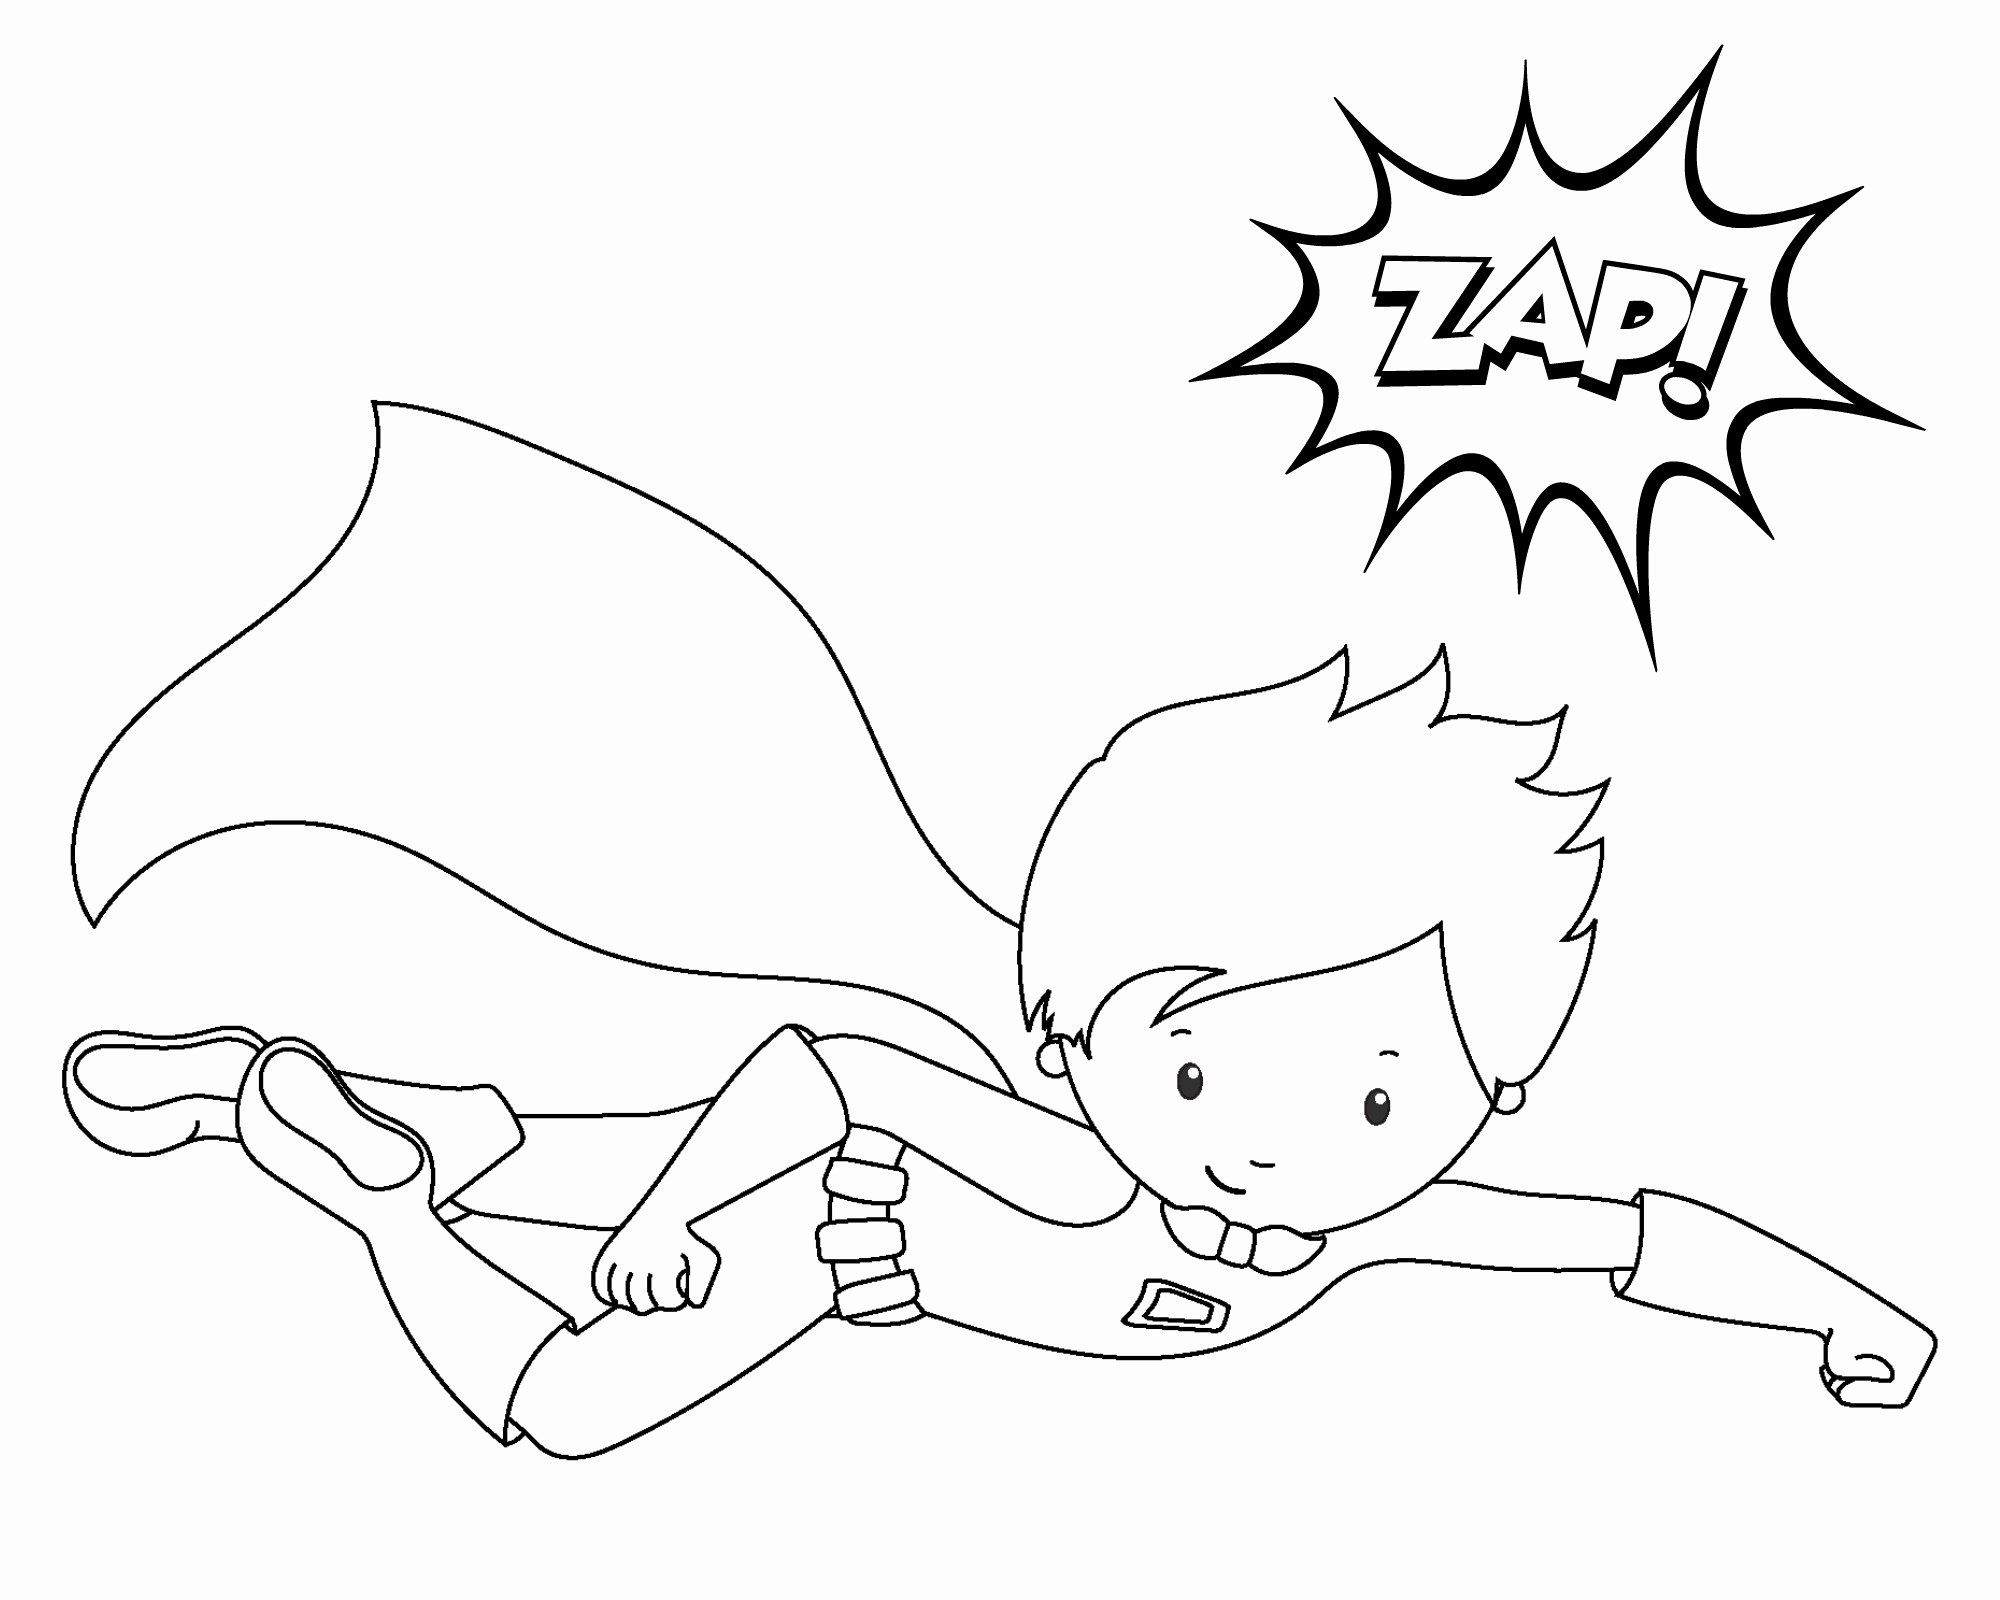 Super Hero Coloring Book Luxury Free Printable Superhero Coloring Sheets For Kids Crazy In 2020 Super Hero Coloring Sheets Superhero Coloring Pages Superhero Coloring